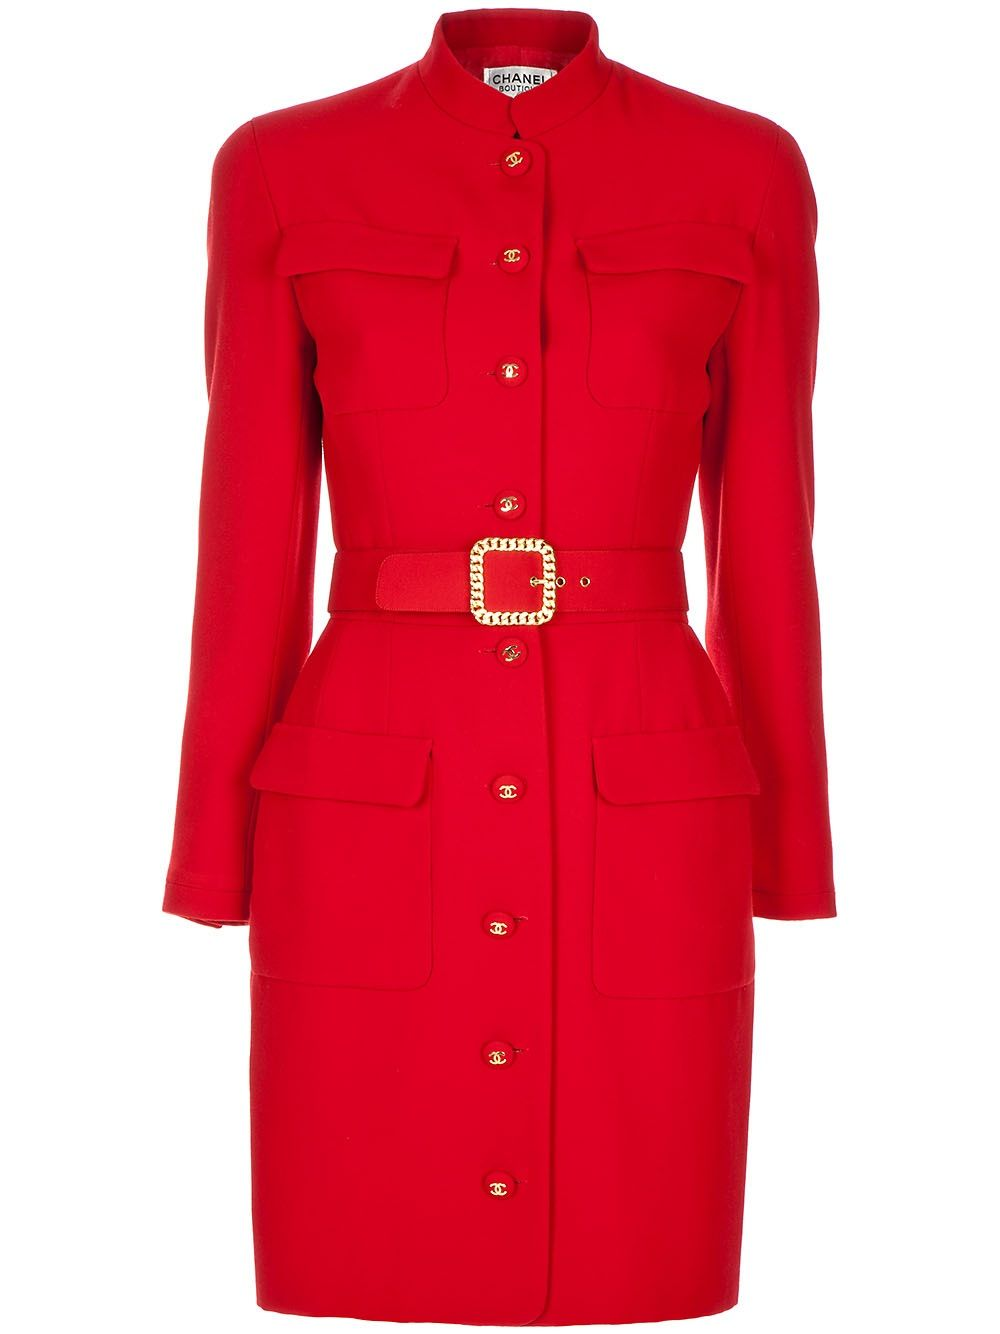 eef92fe4d3e6 Chanel Vintage - Red wool fitted vintage coat from Chanel featuring red  buttns with gold tone logo detail